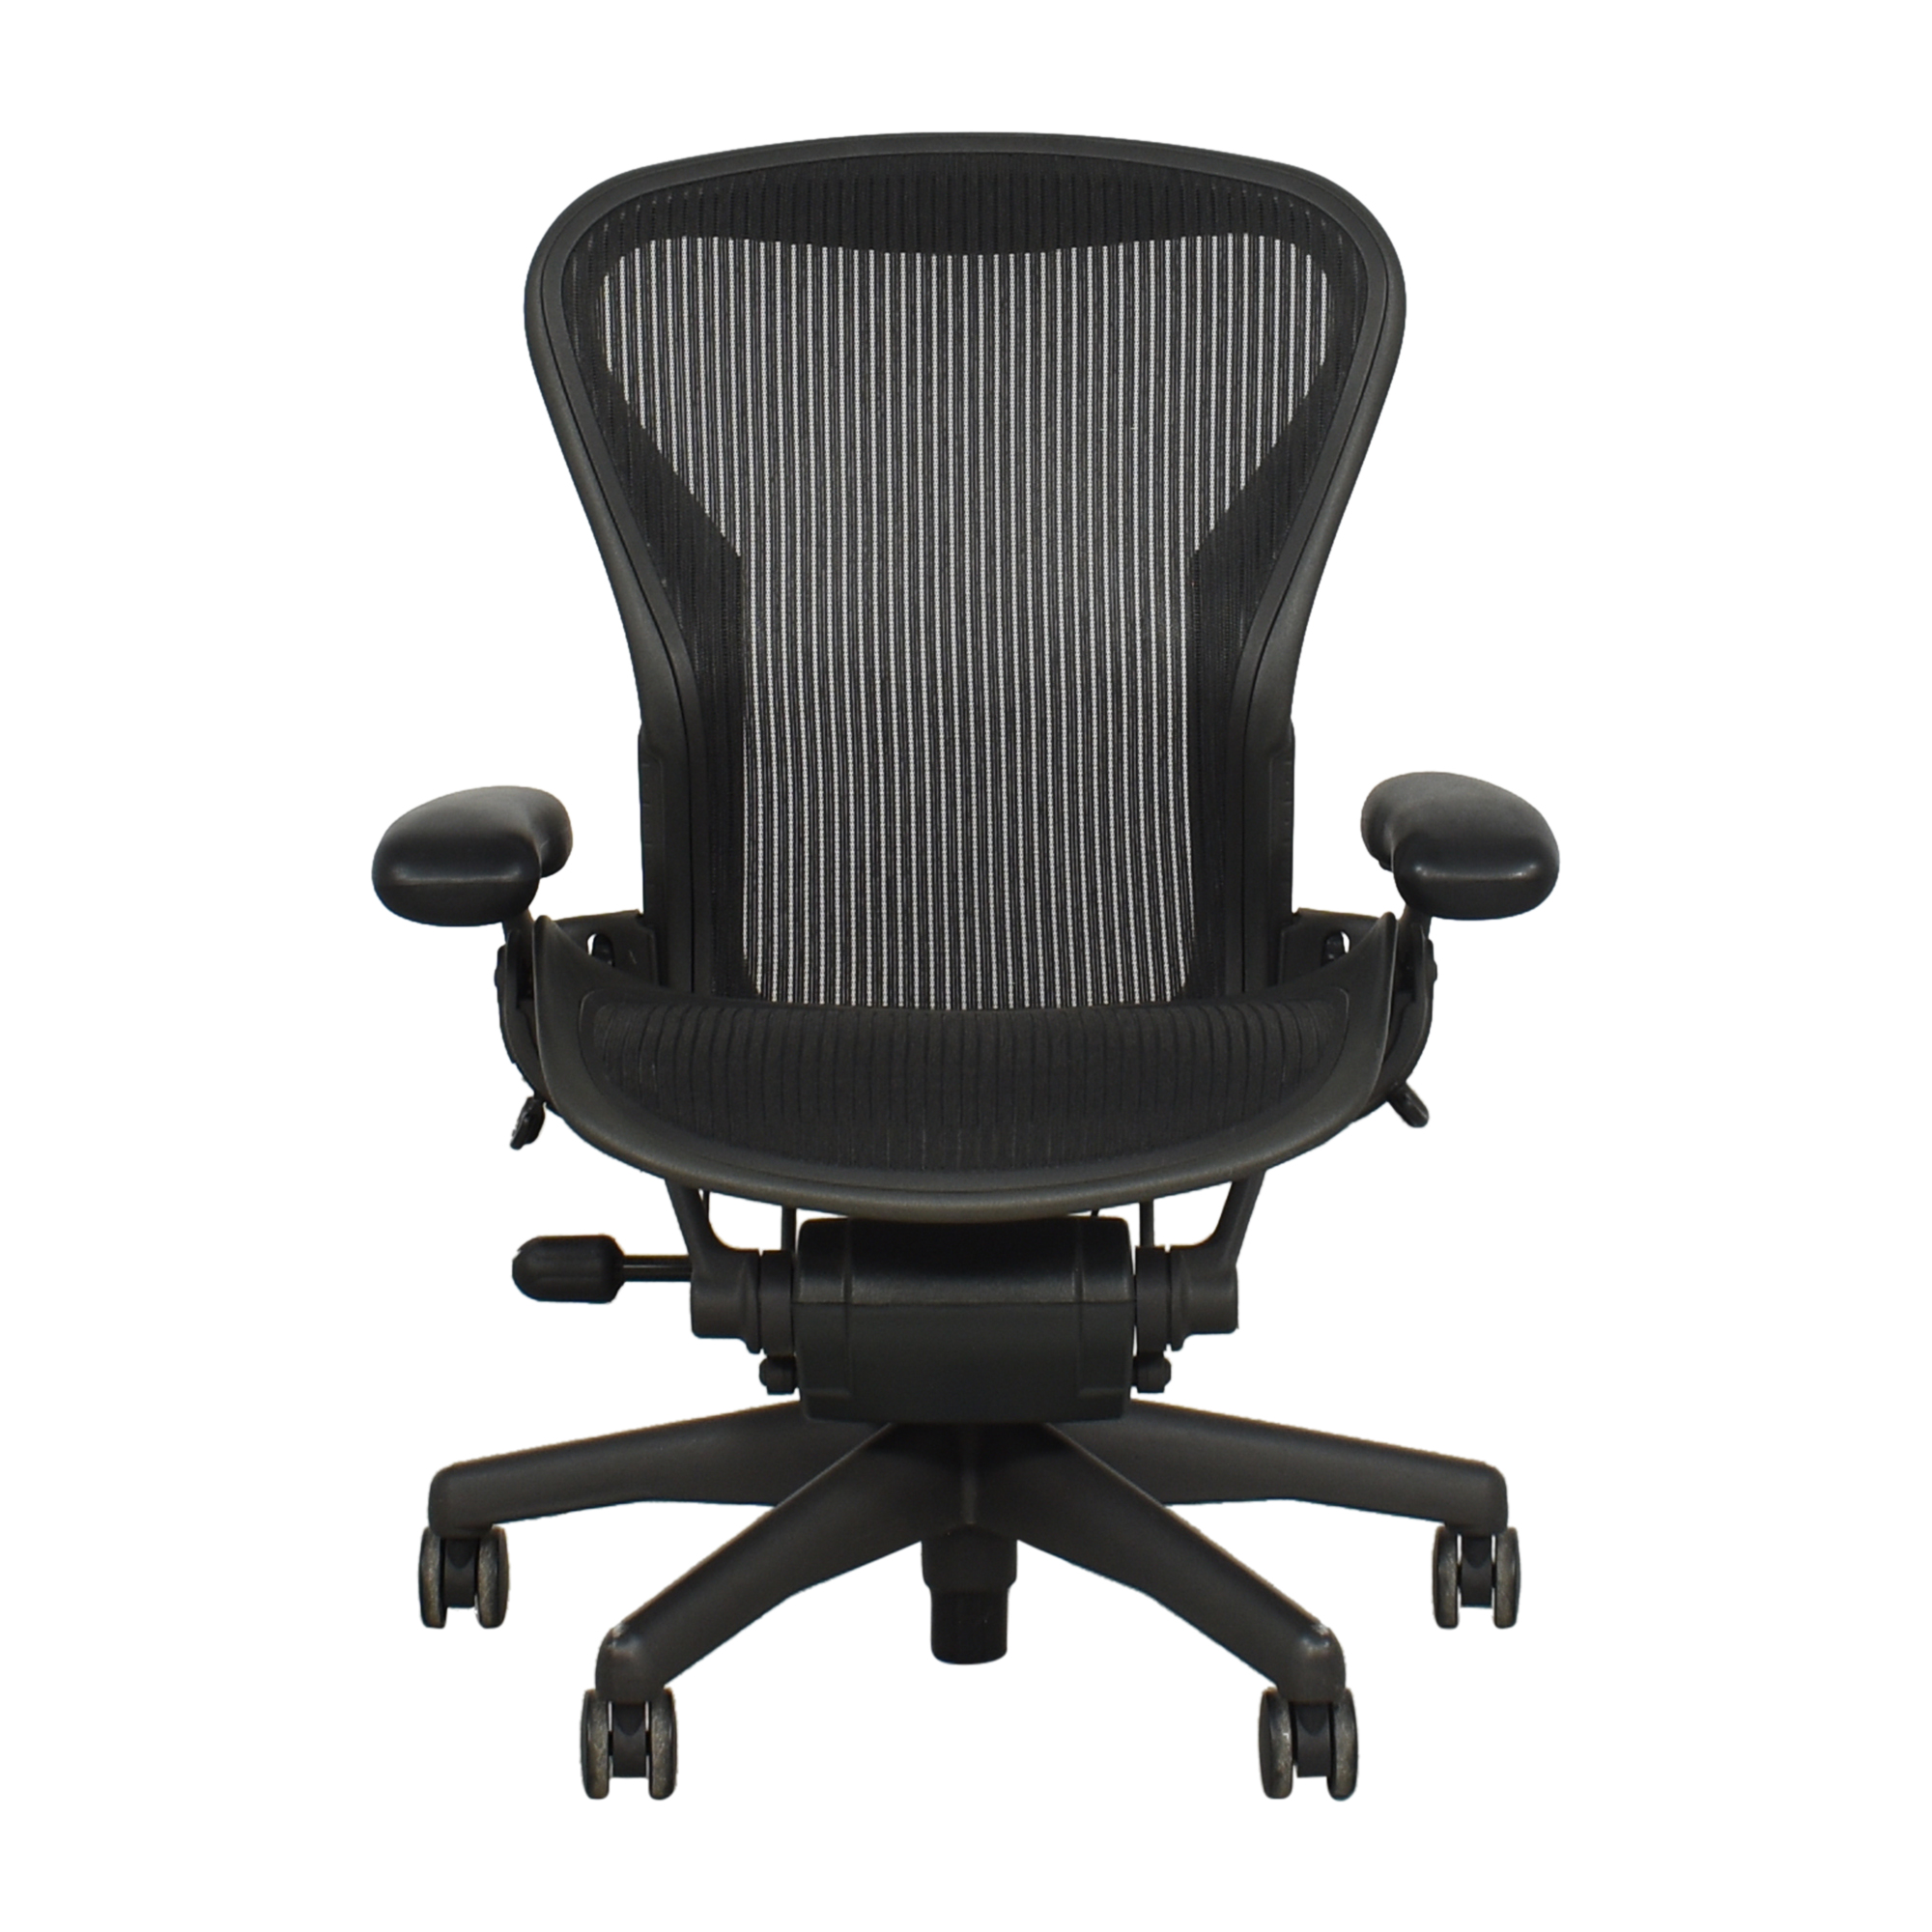 Herman Miller Aeron Size B Office Chair / Chairs